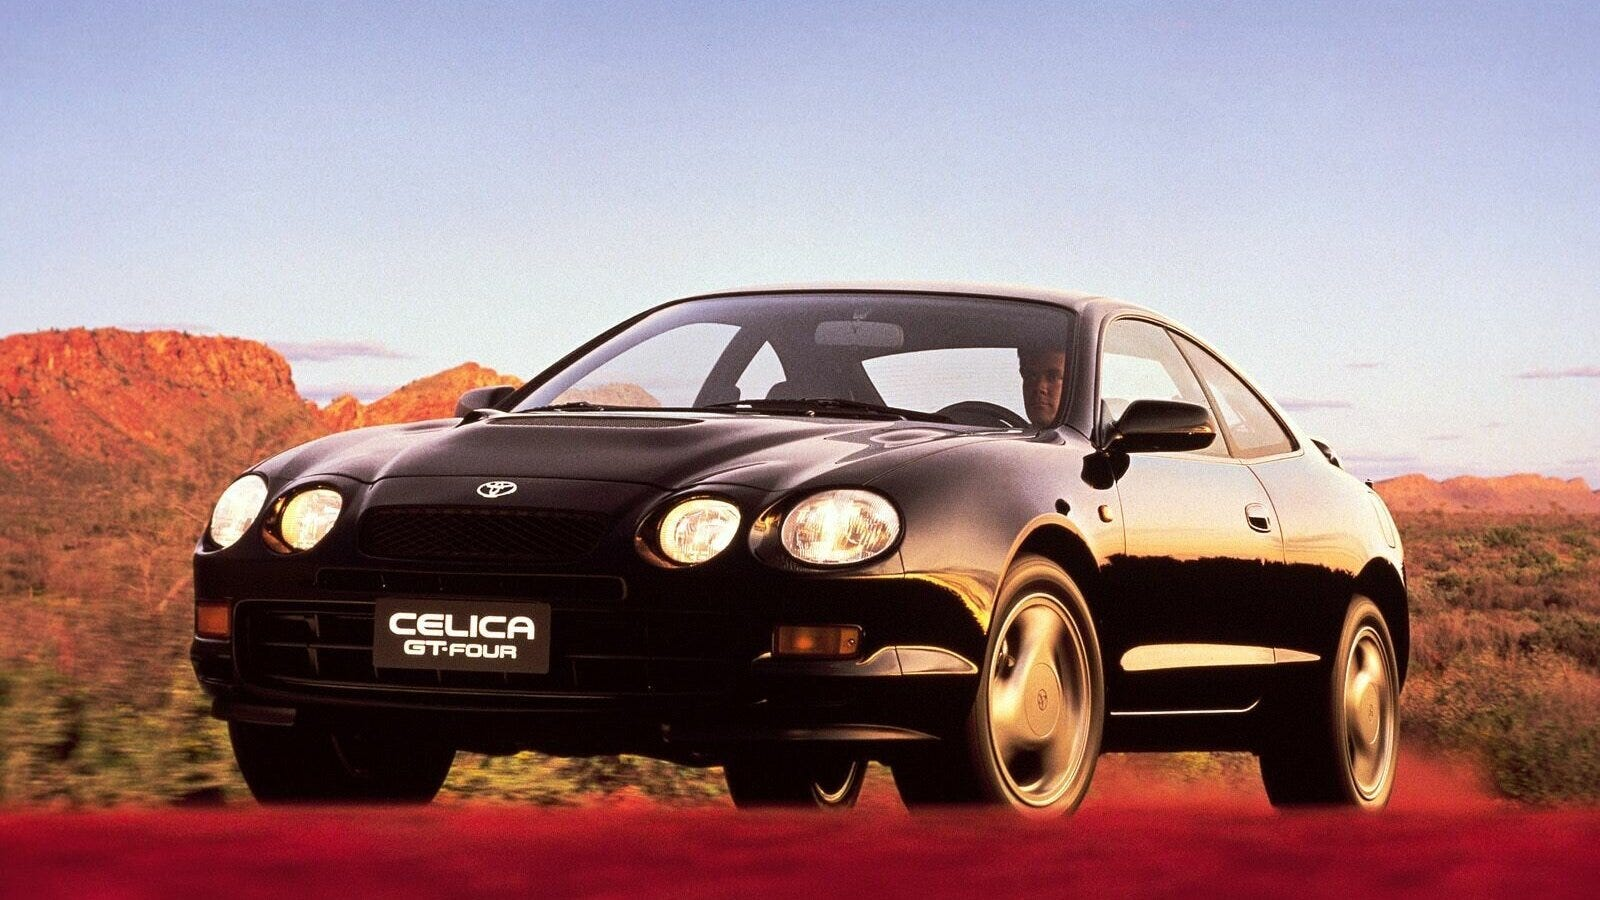 I Always Felt America Got Cheated Because We Never Got This Celica GT-Four